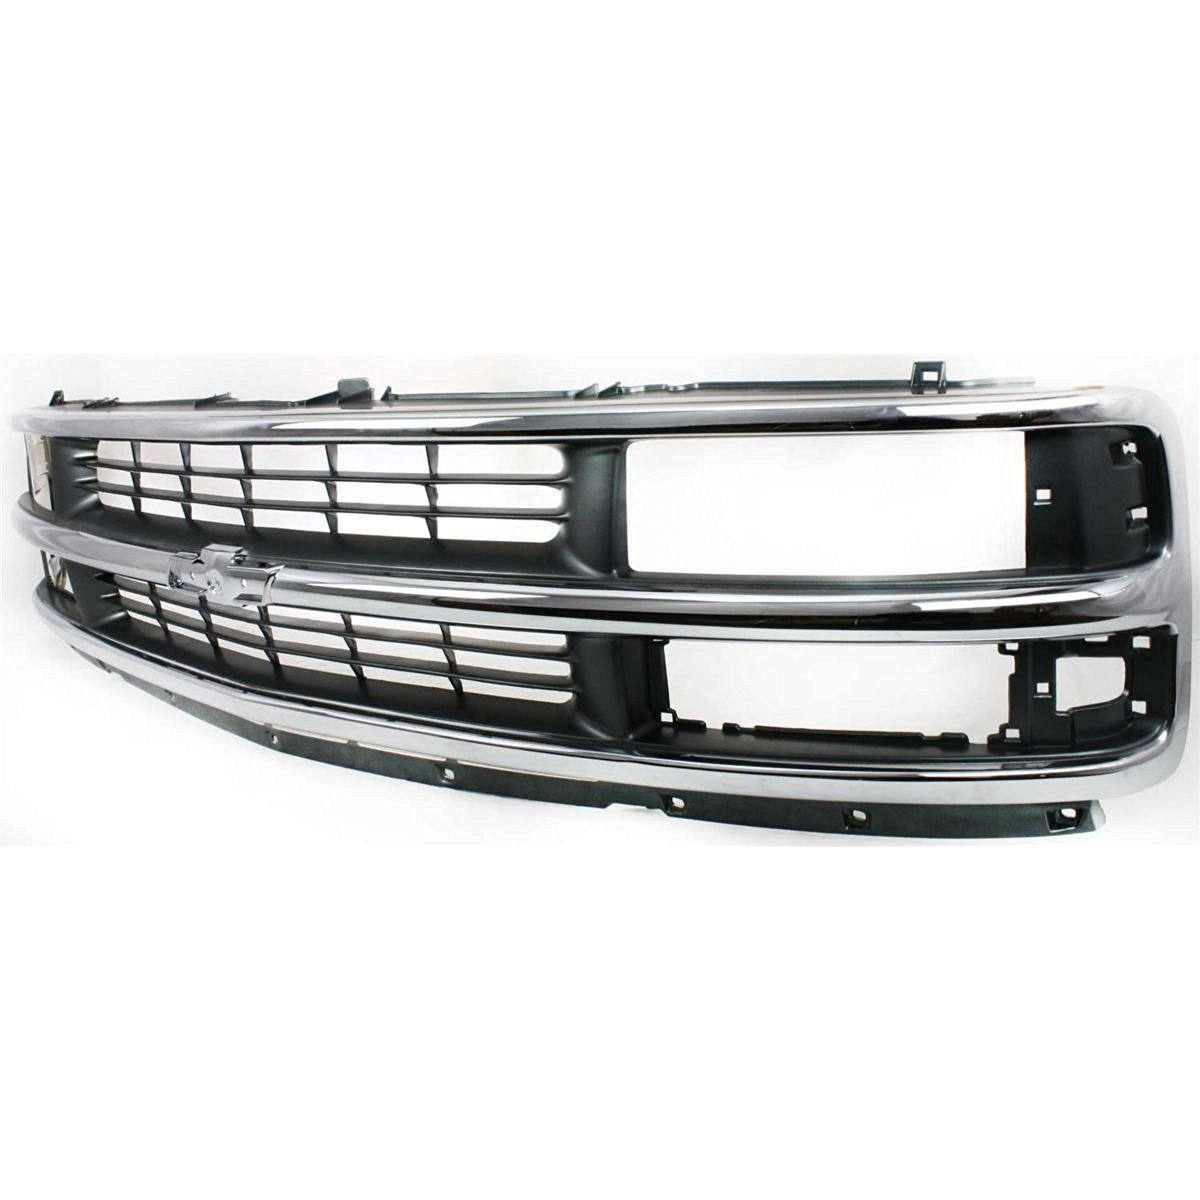 Diften 102-A8142-X01 - New Grille Assembly Grill Chrome shell silver gray insert GM1200382 15037242